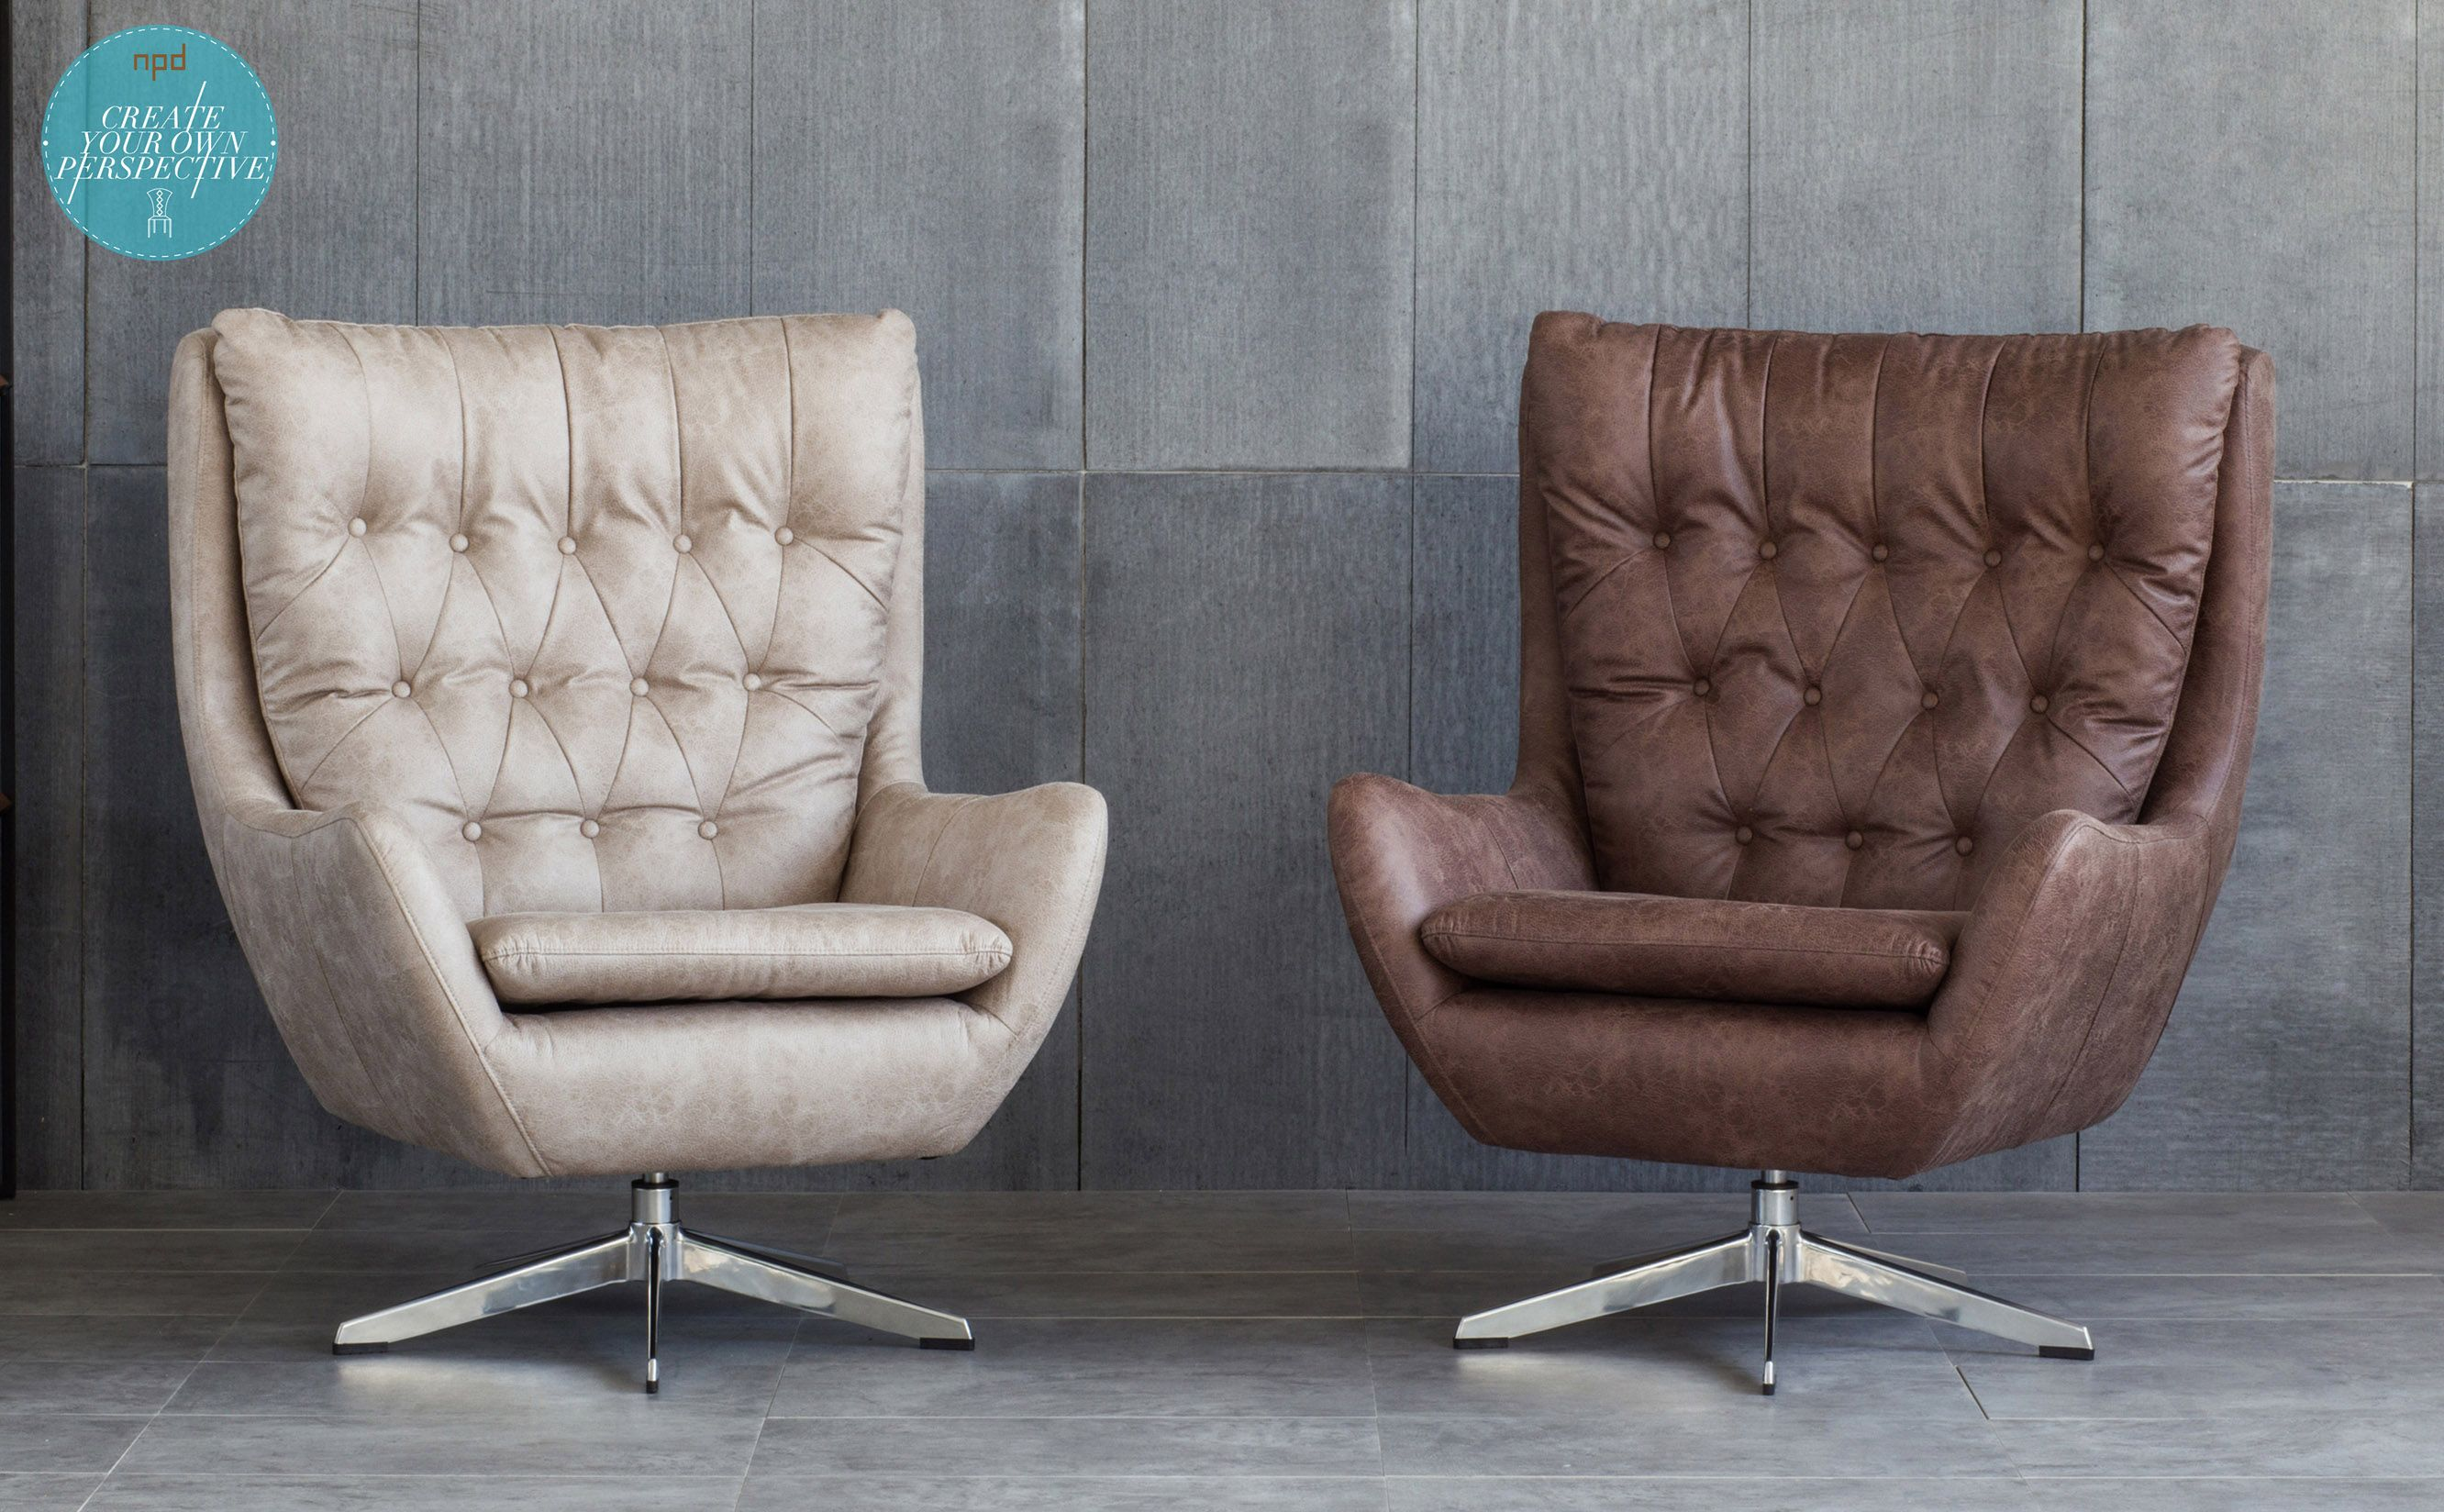 These handsome Skylar chairs illustrates MidCentury